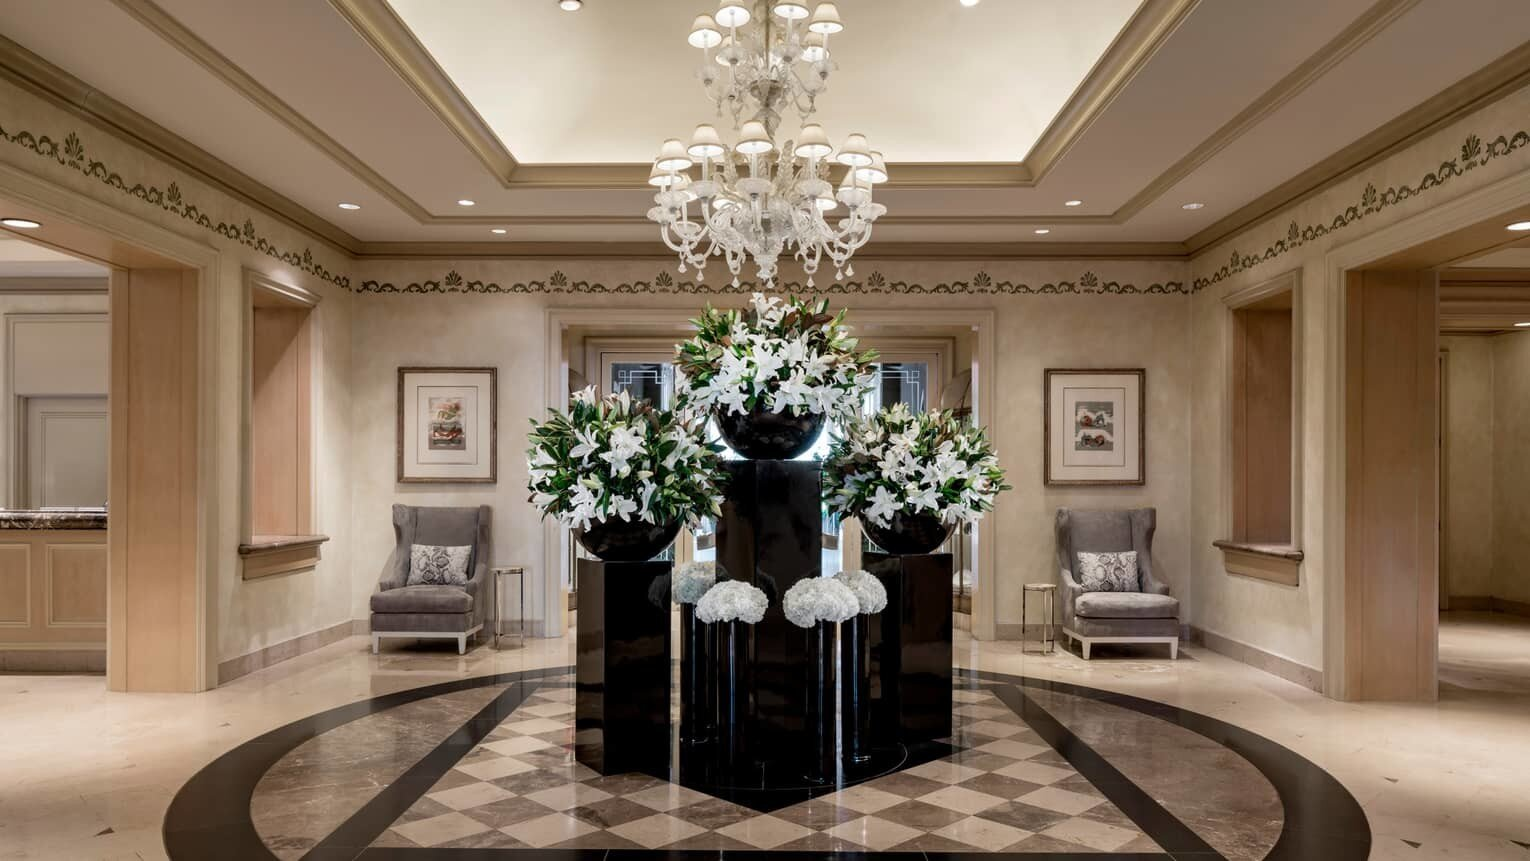 news-main-four-seasons-hotel-los-angeles-at-beverly-hills-welcoms-legendary-chris-ford-as-executive-pastry-chef.1560954750.jpg